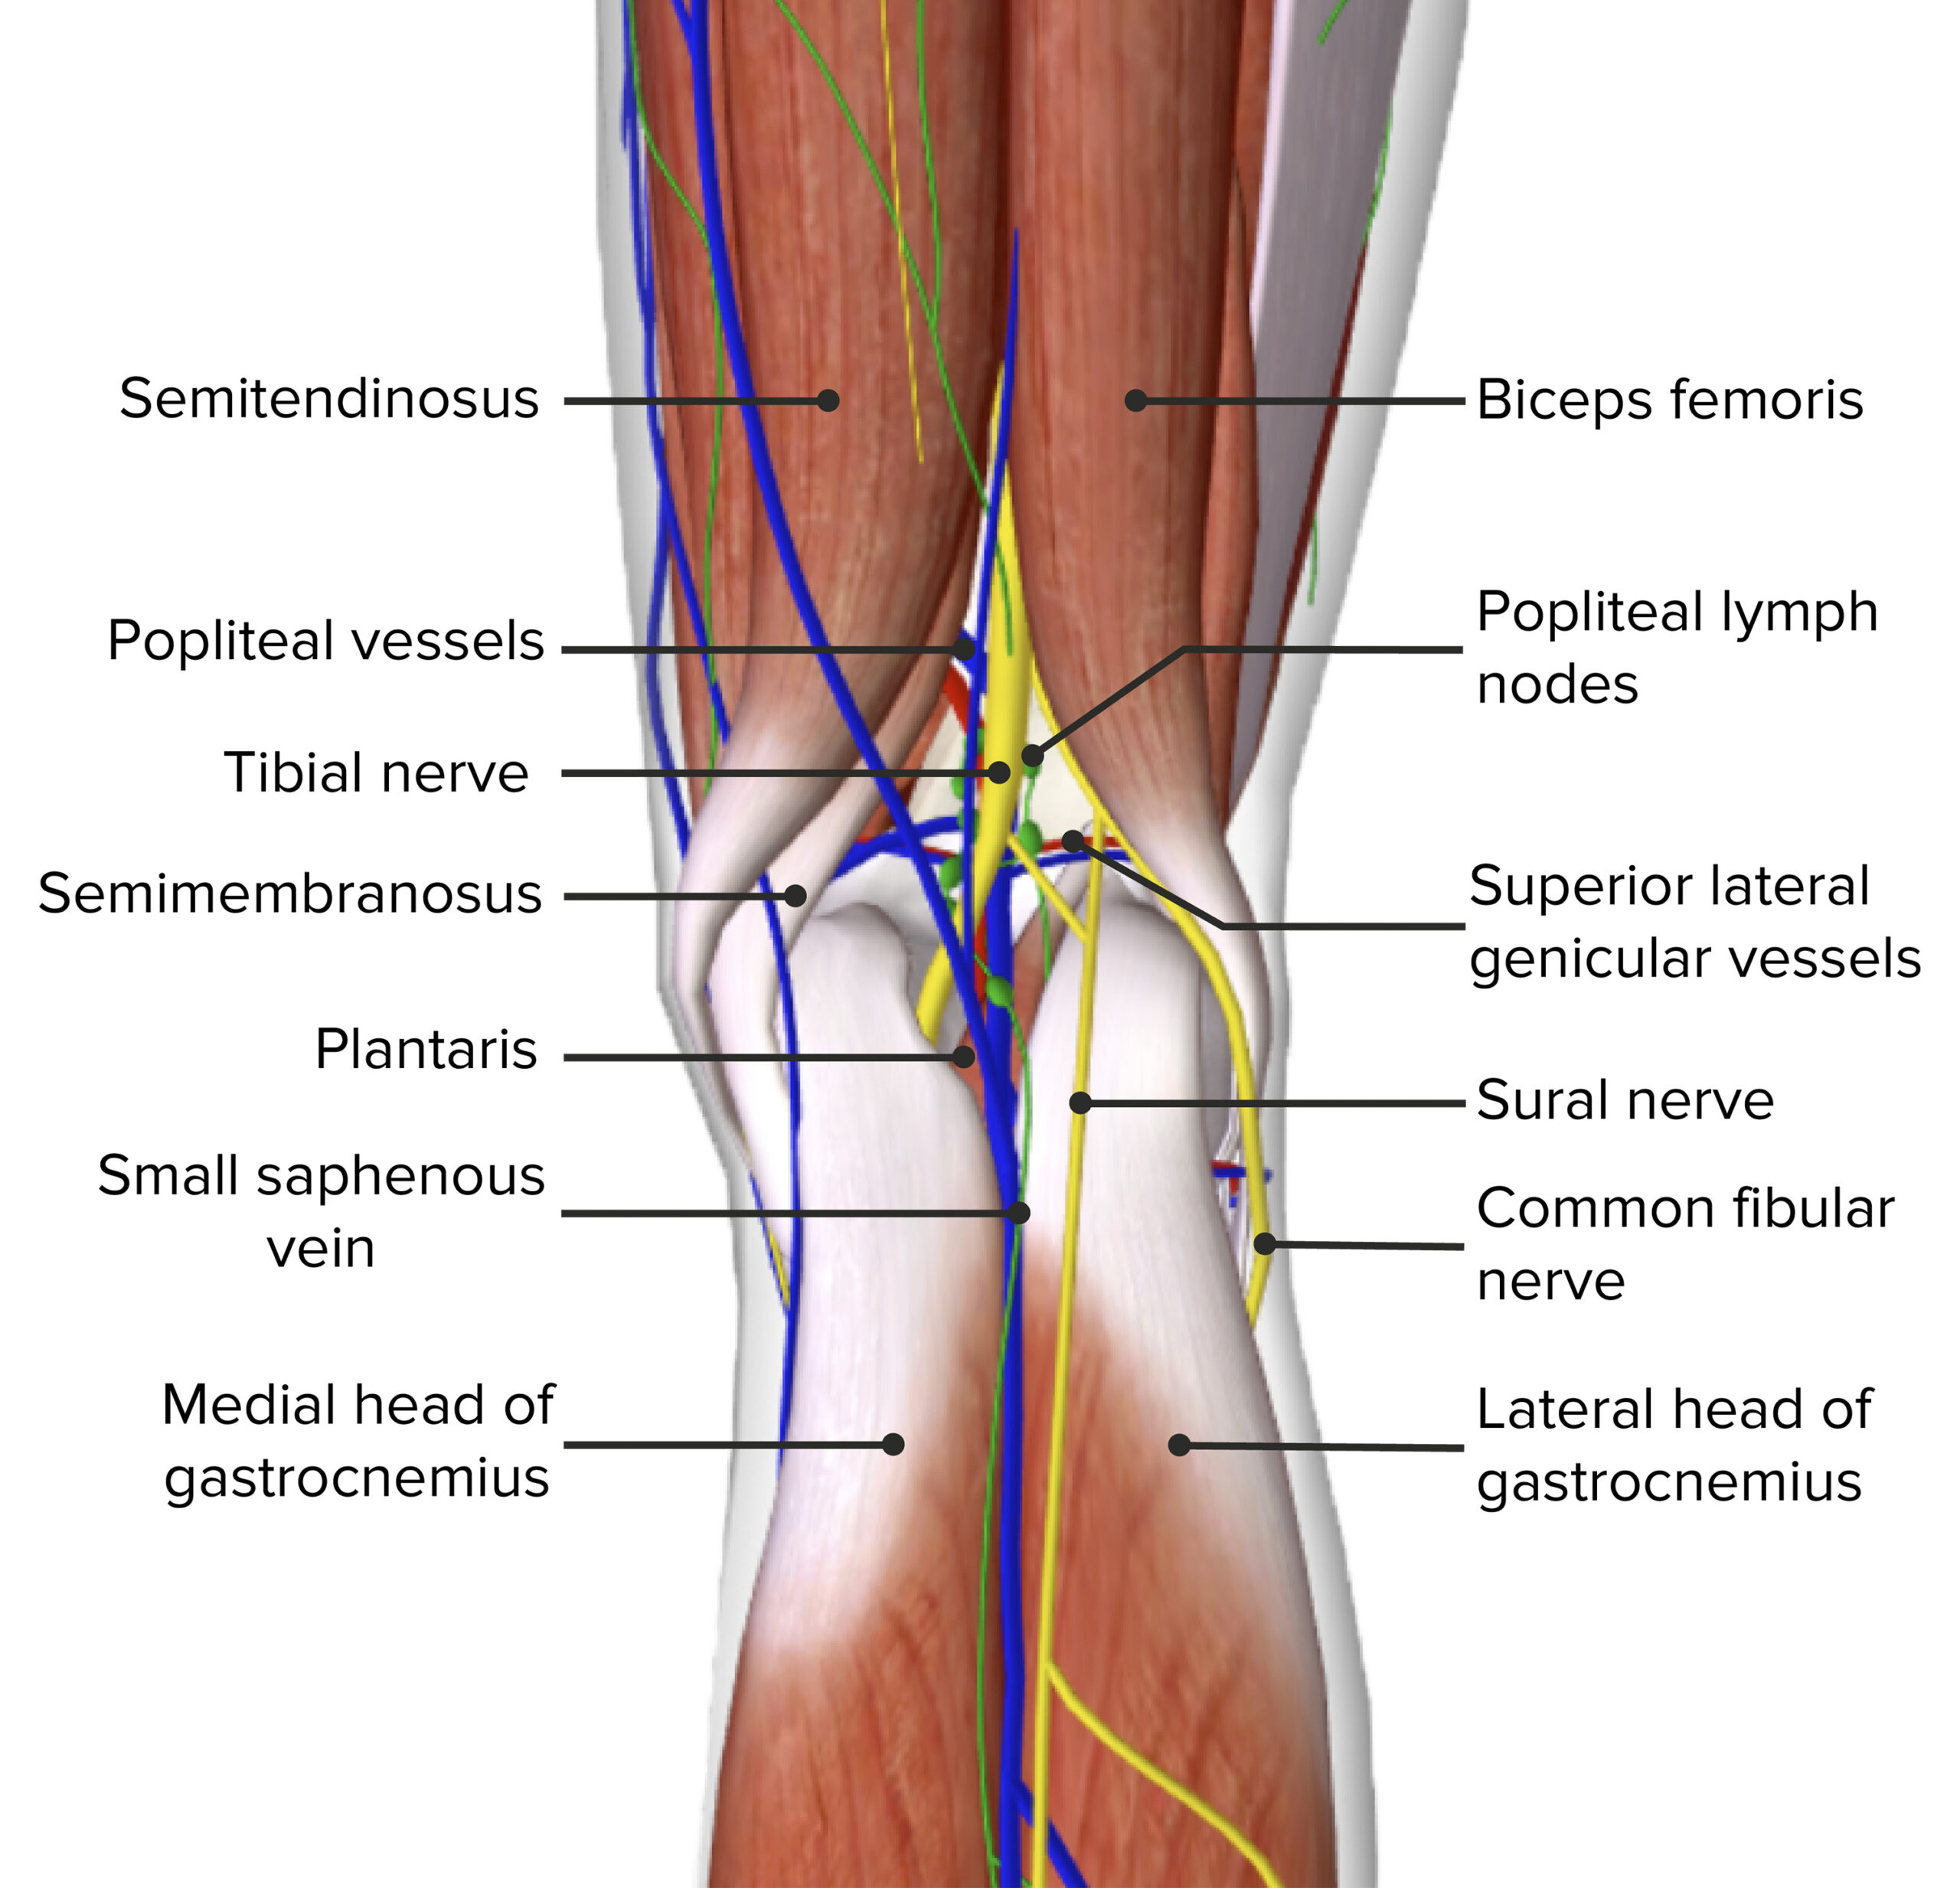 Contents of the popliteal fossa